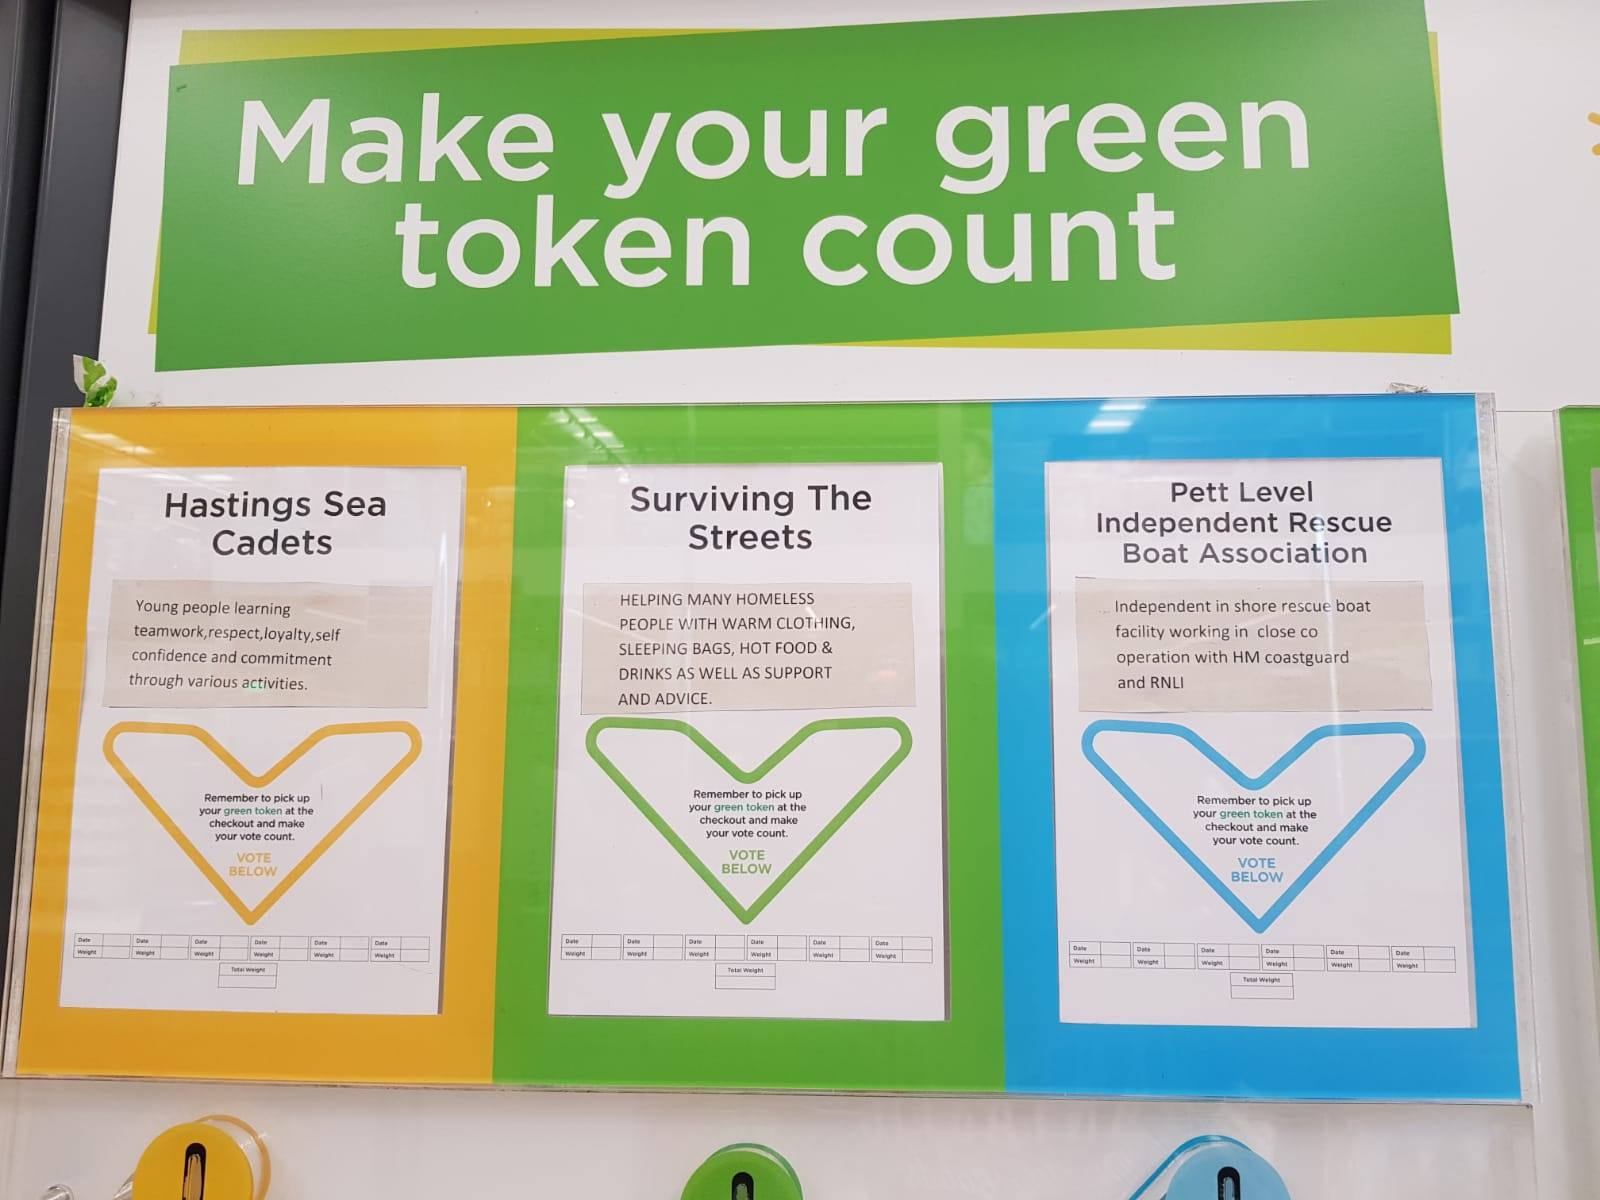 For a Limited Time, It's Now Possible To Support Us When You Shop at Asda